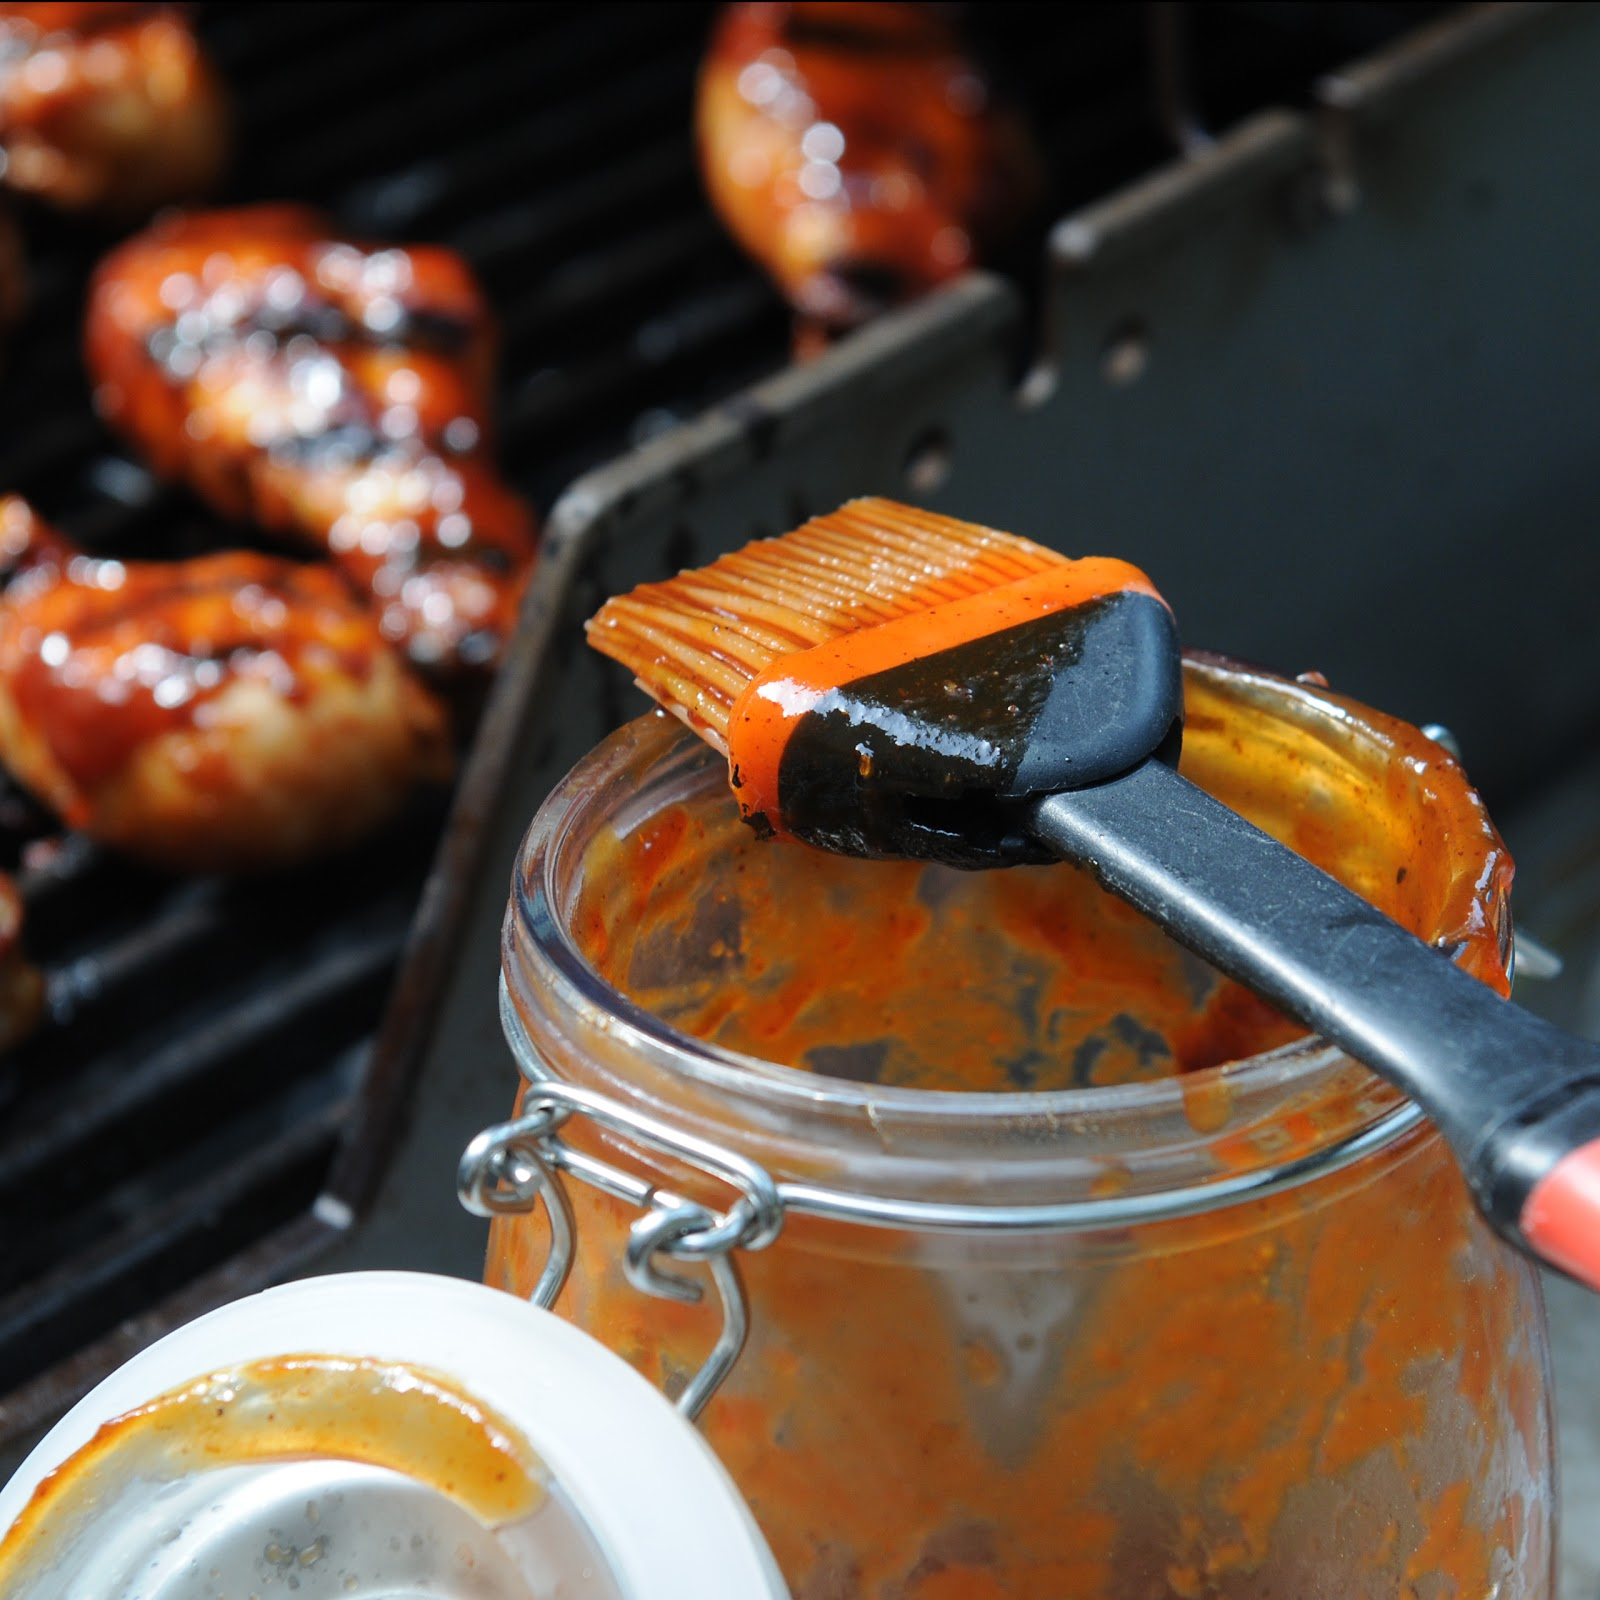 155. Homemade BBQ Sauce